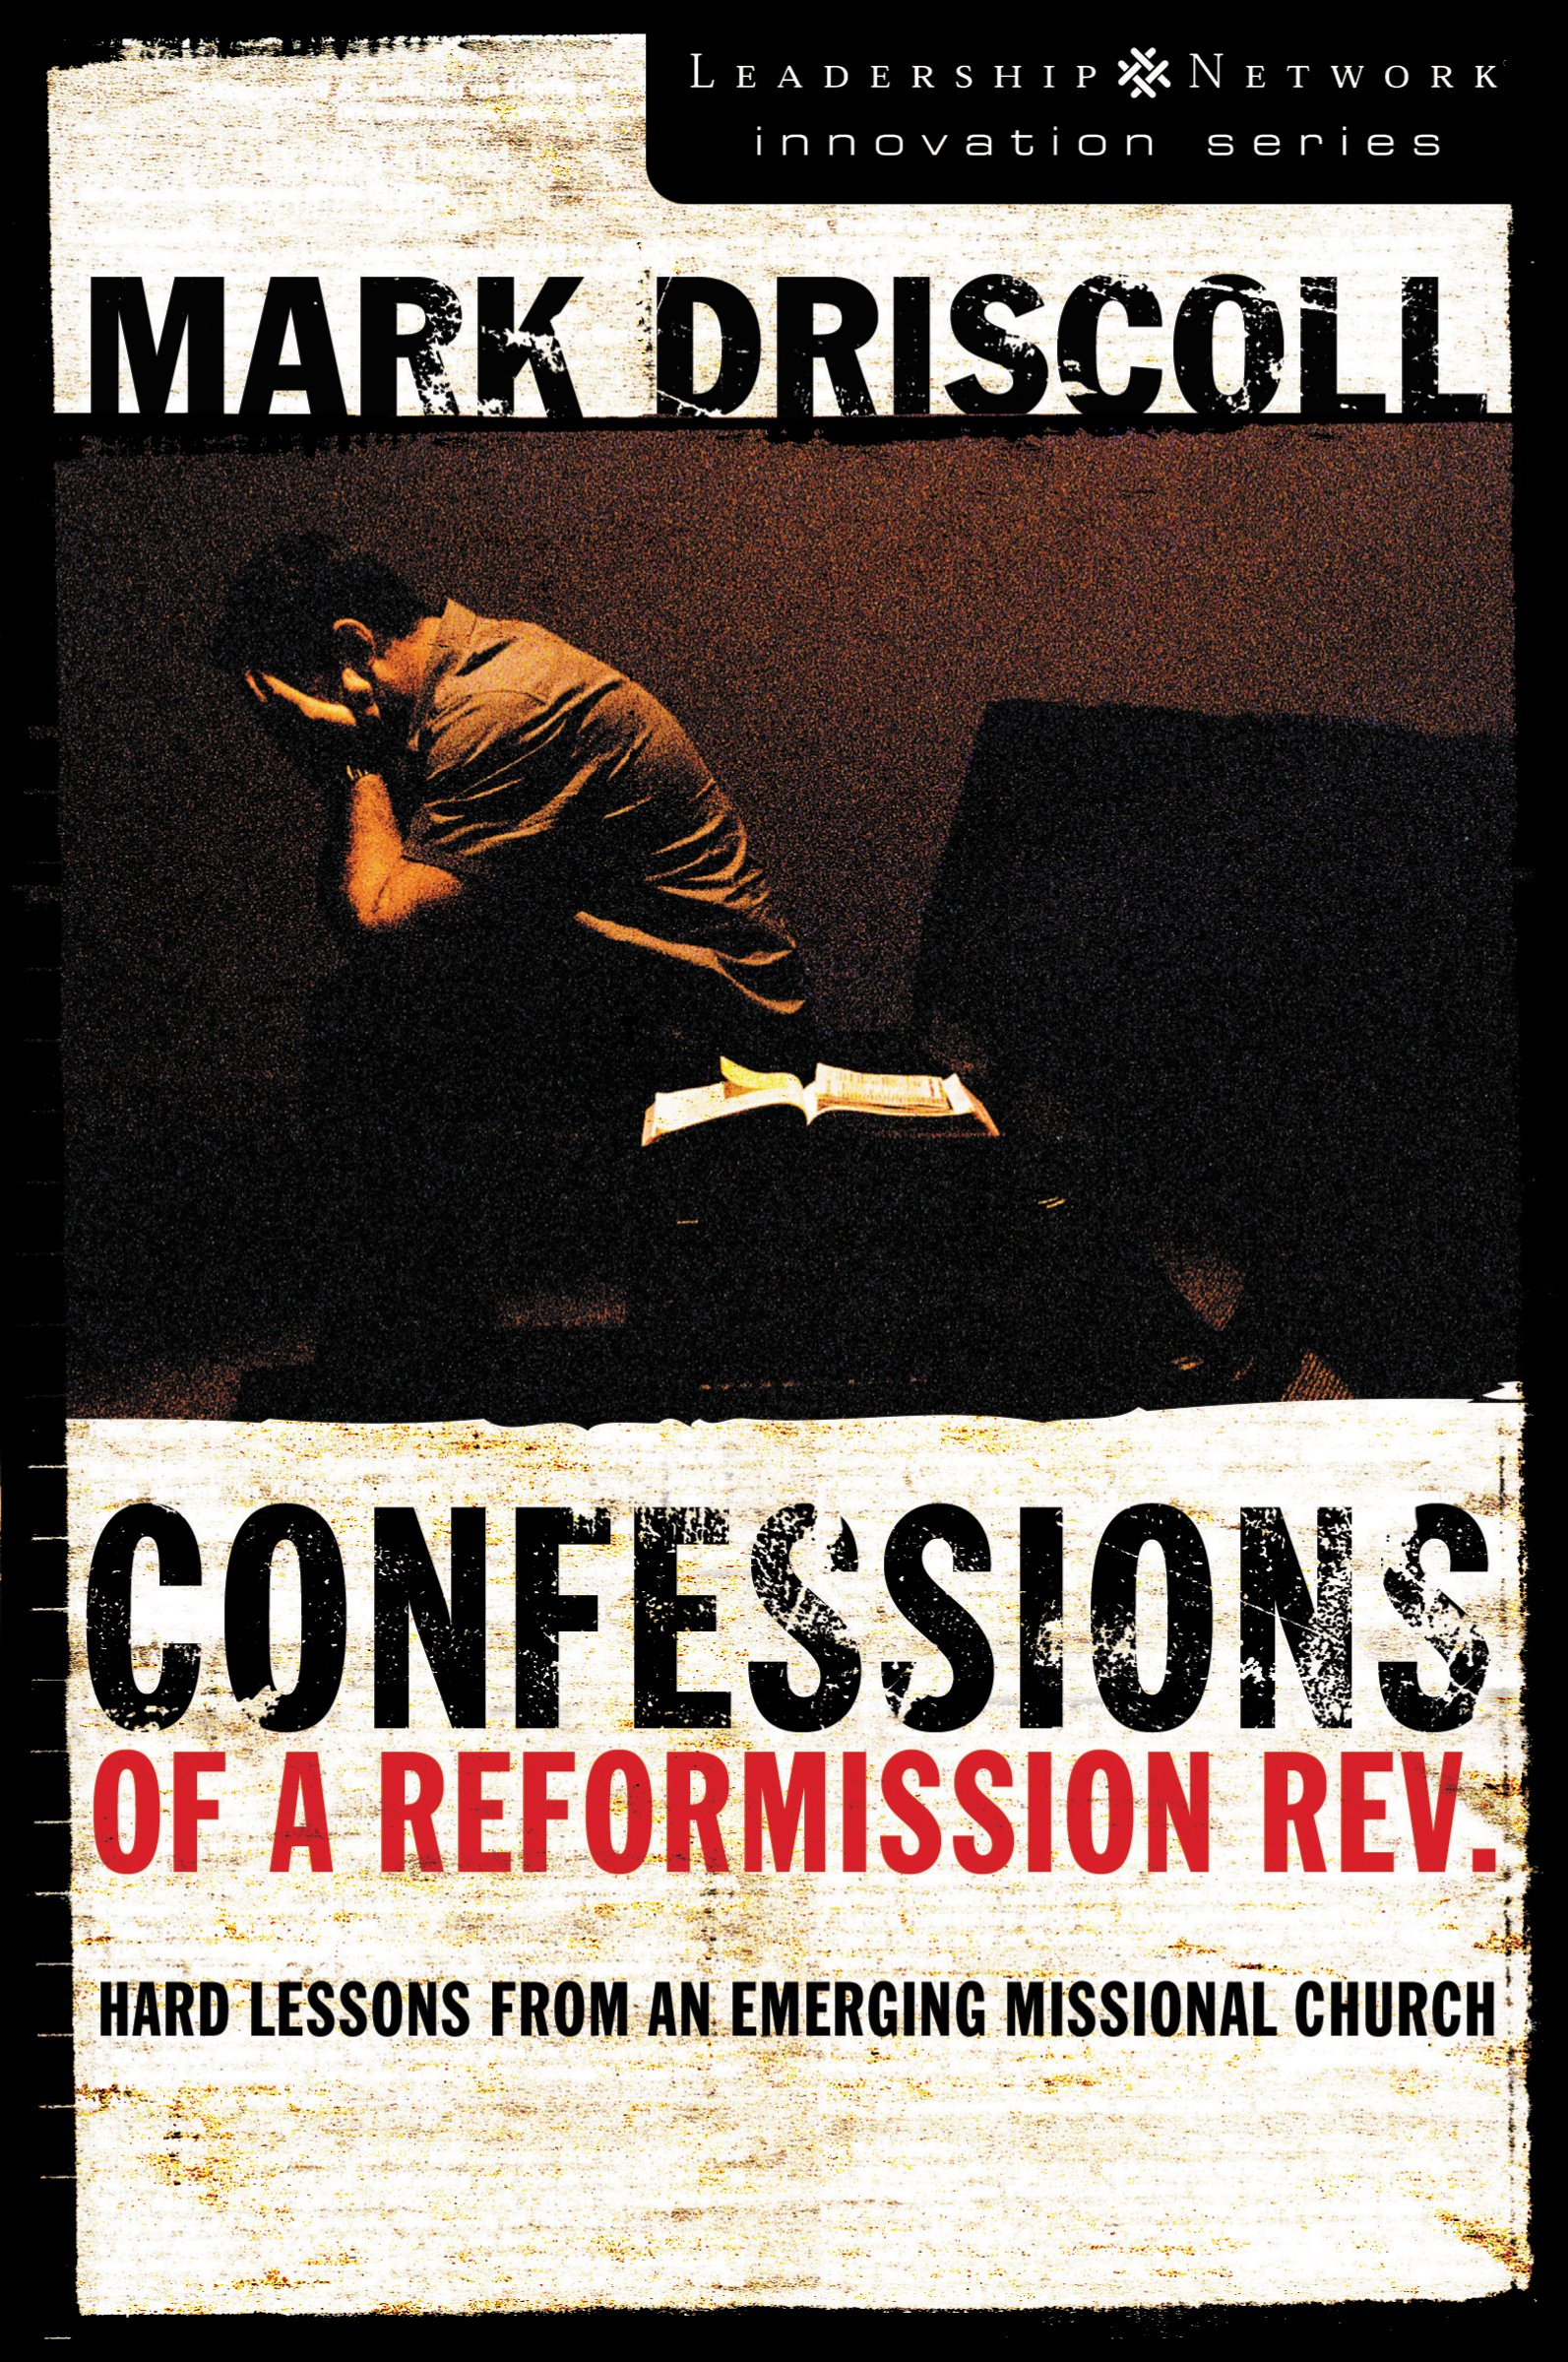 Confessions of a Reformission Rev.: Hard Lessons from an Emerging Missional Church (Leadership Network Innovation Series) (English Edition)